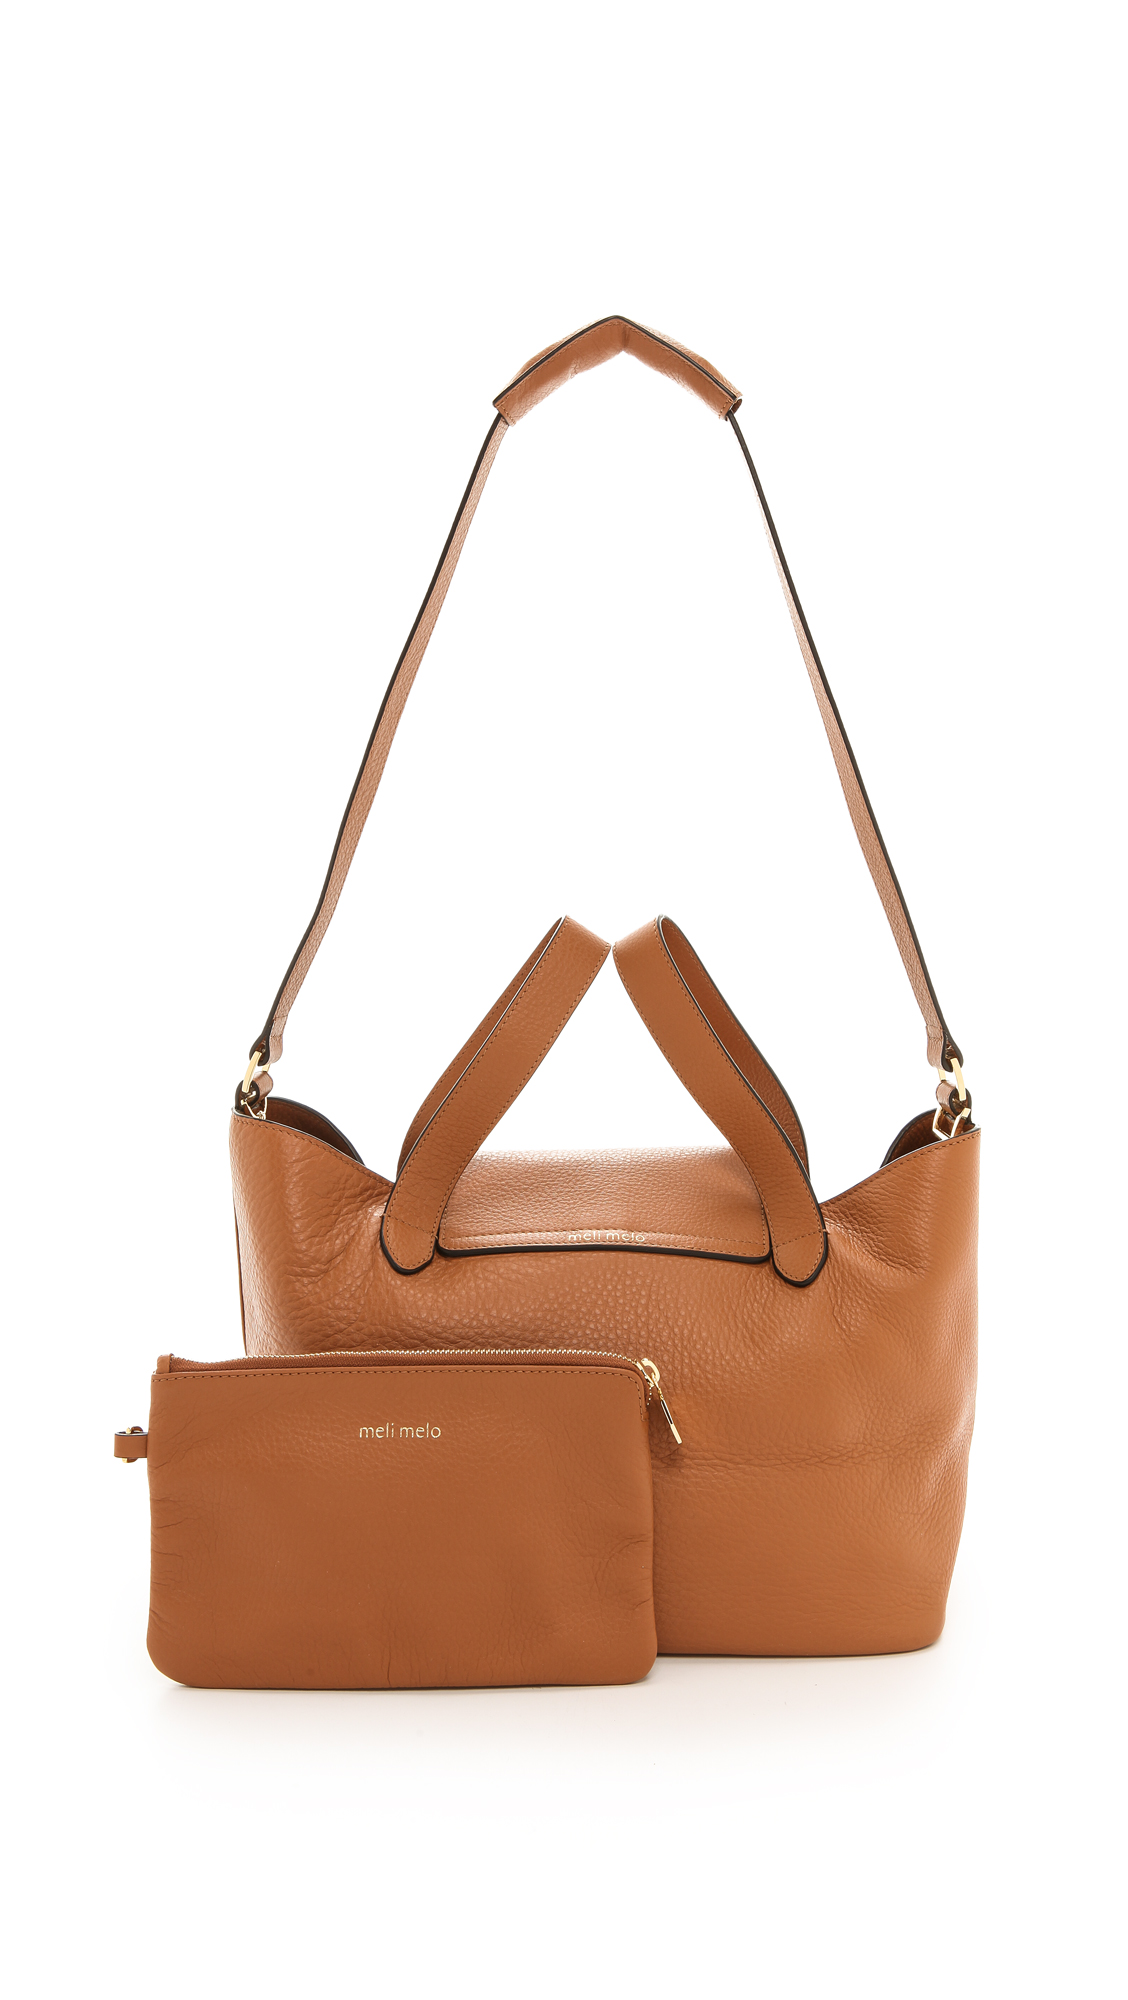 meli melo Thela Medium Handbag | SHOPBOP SAVE 25% use Code:FAMILY25